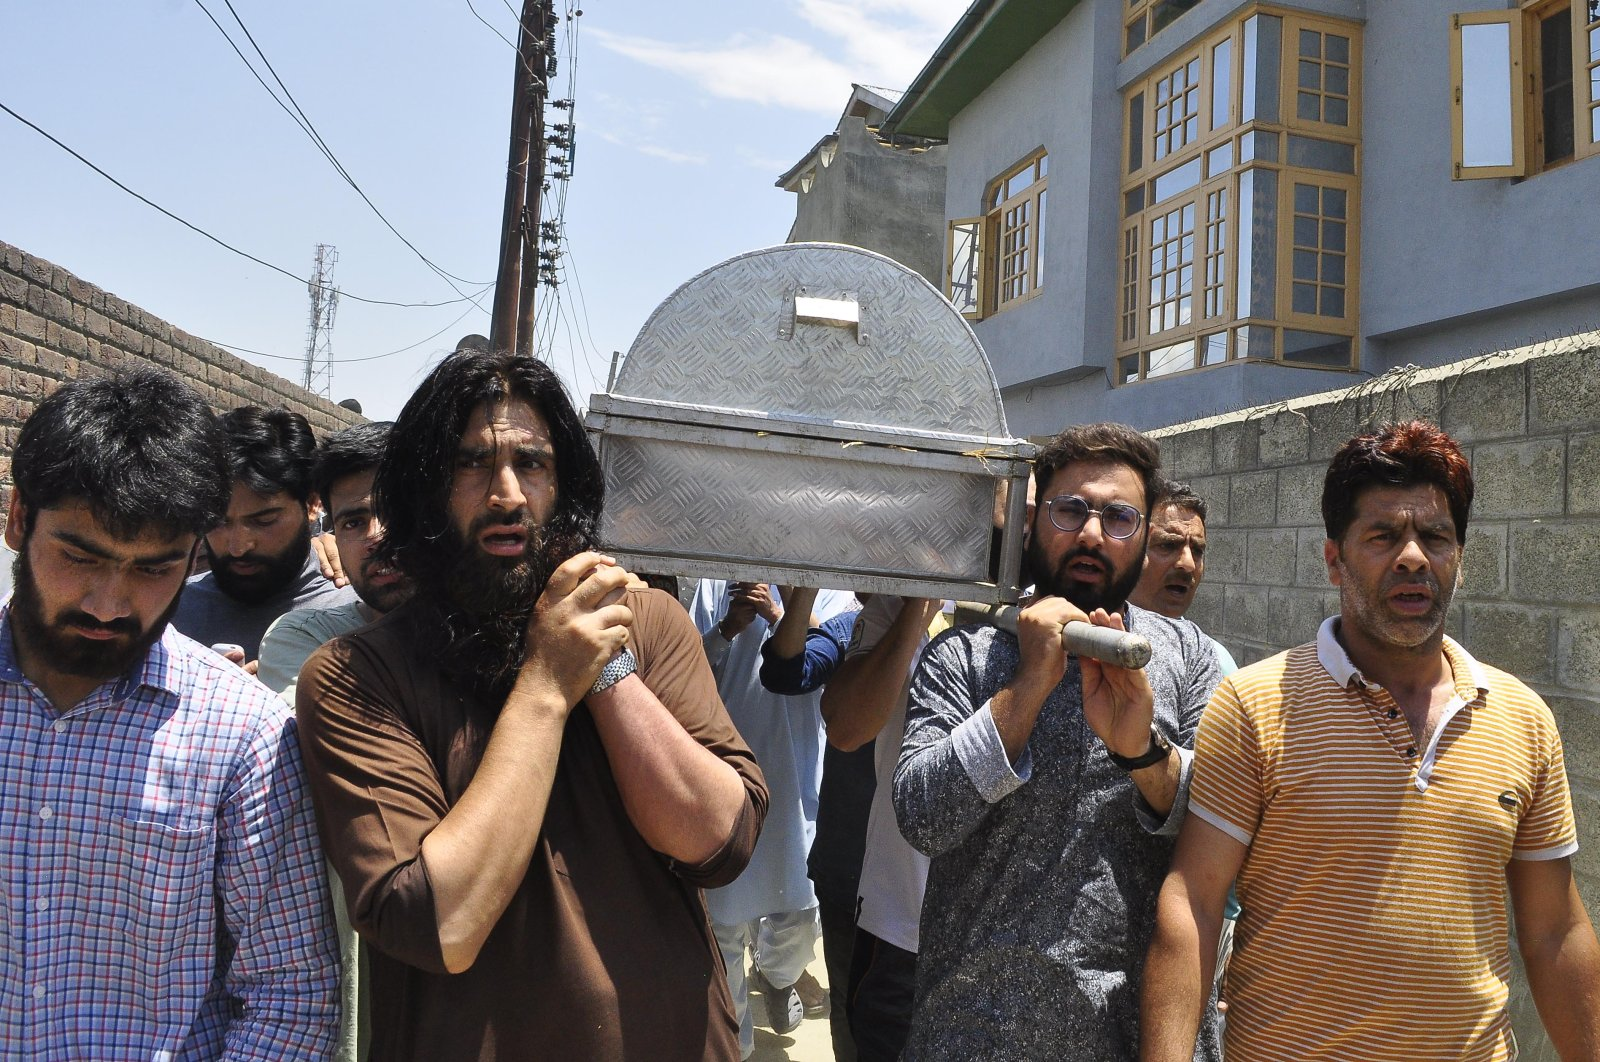 Relatives and neighbors carry the coffin of civilian Bashir Ahmed Khan during his funeral, Srinagar, July 1, 2020. (AA Photo)